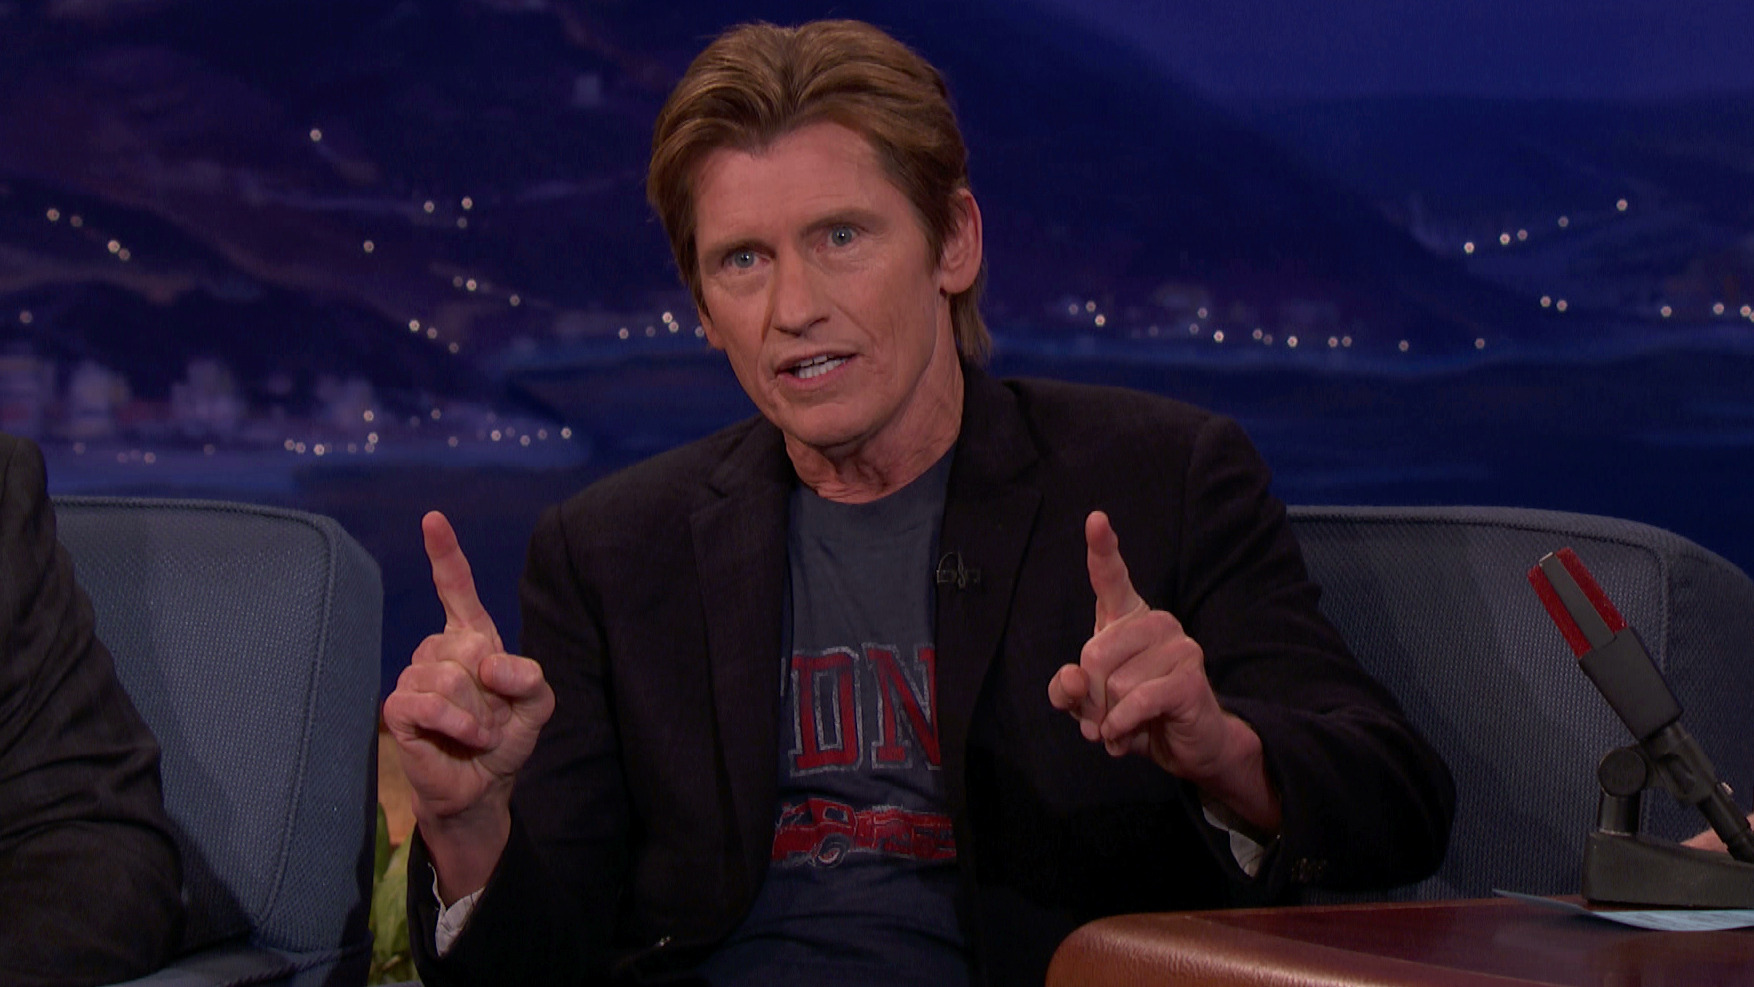 Denis leary on bill cosby